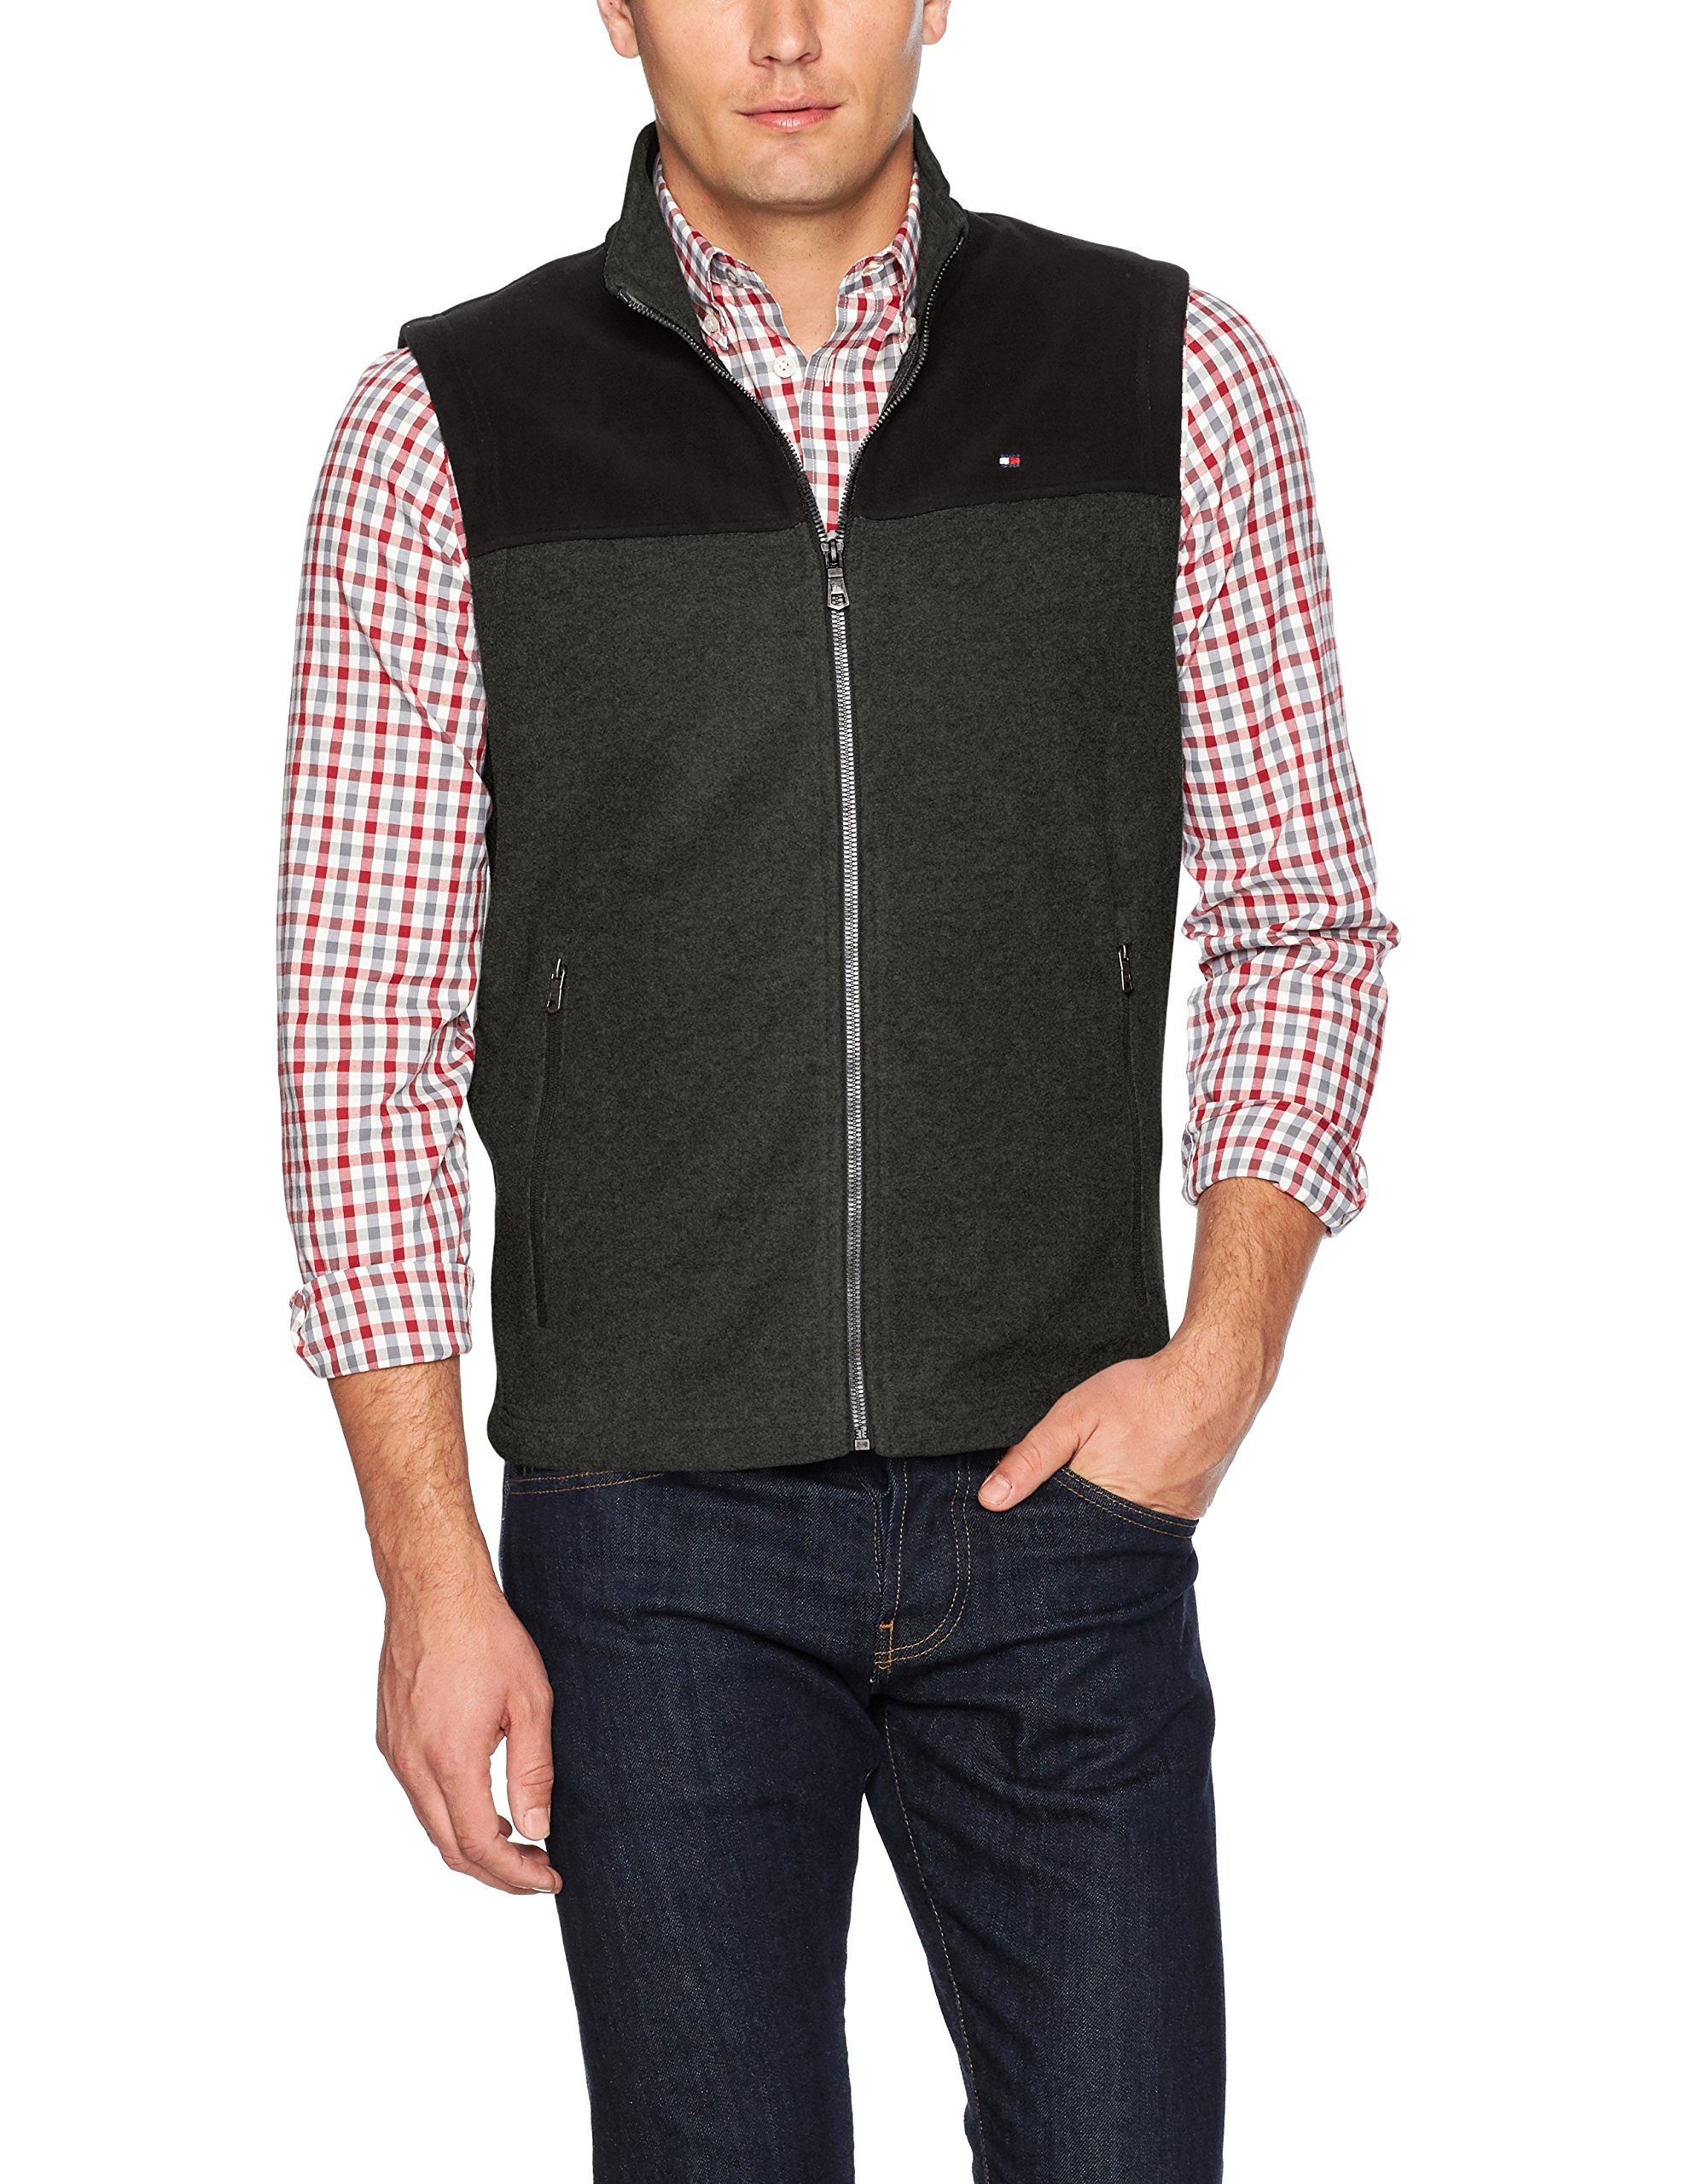 Tommy Hilfiger Men's Polar Fleece Vest, Black/Charcoal, Large